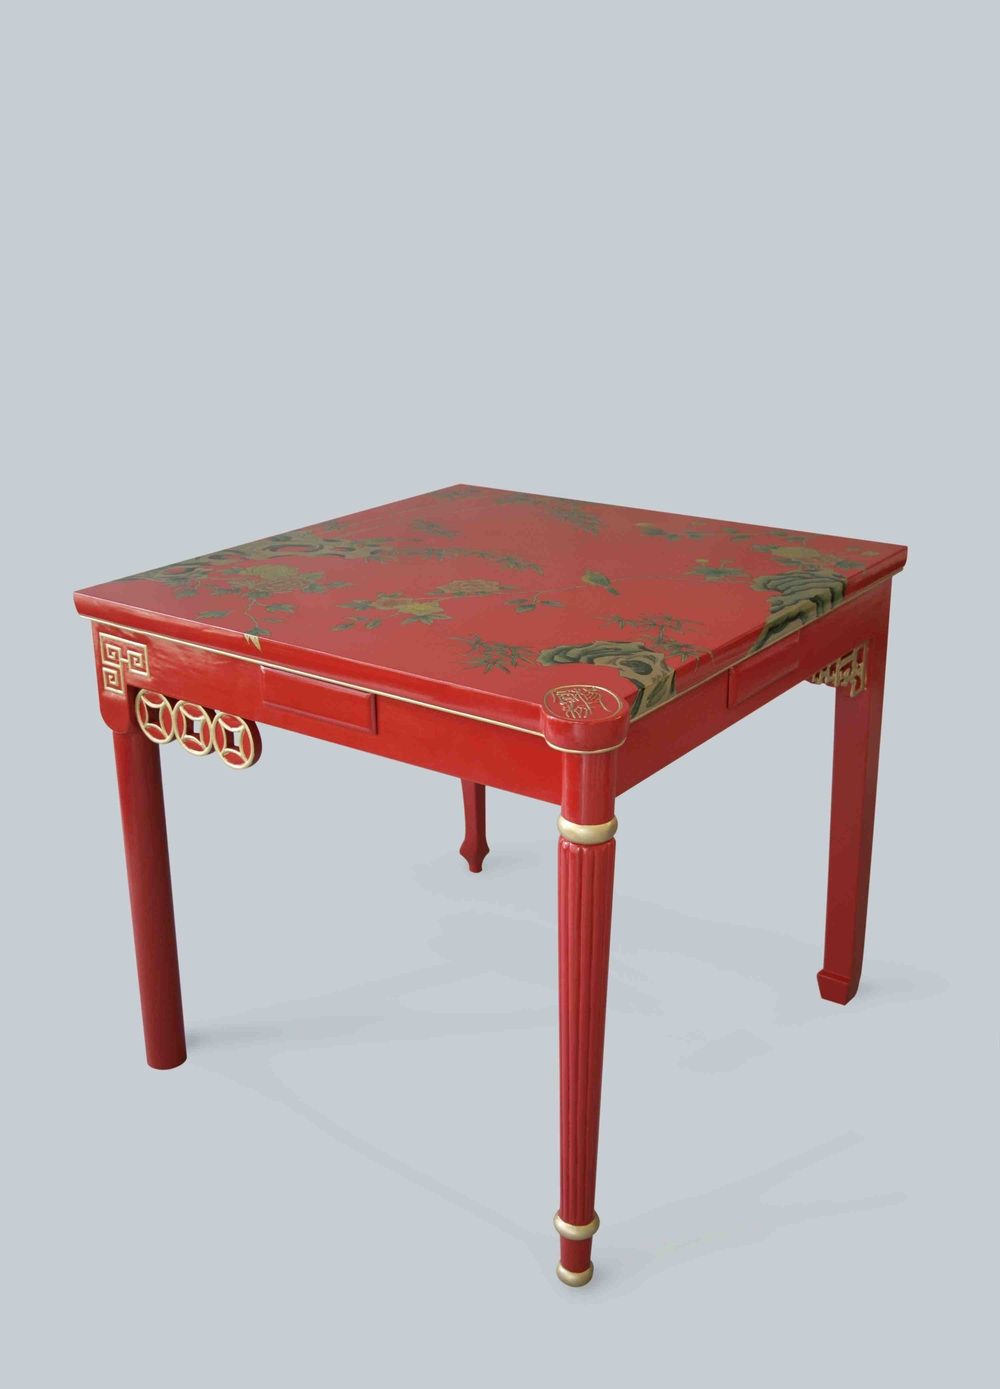 Majiang table-L.jpg